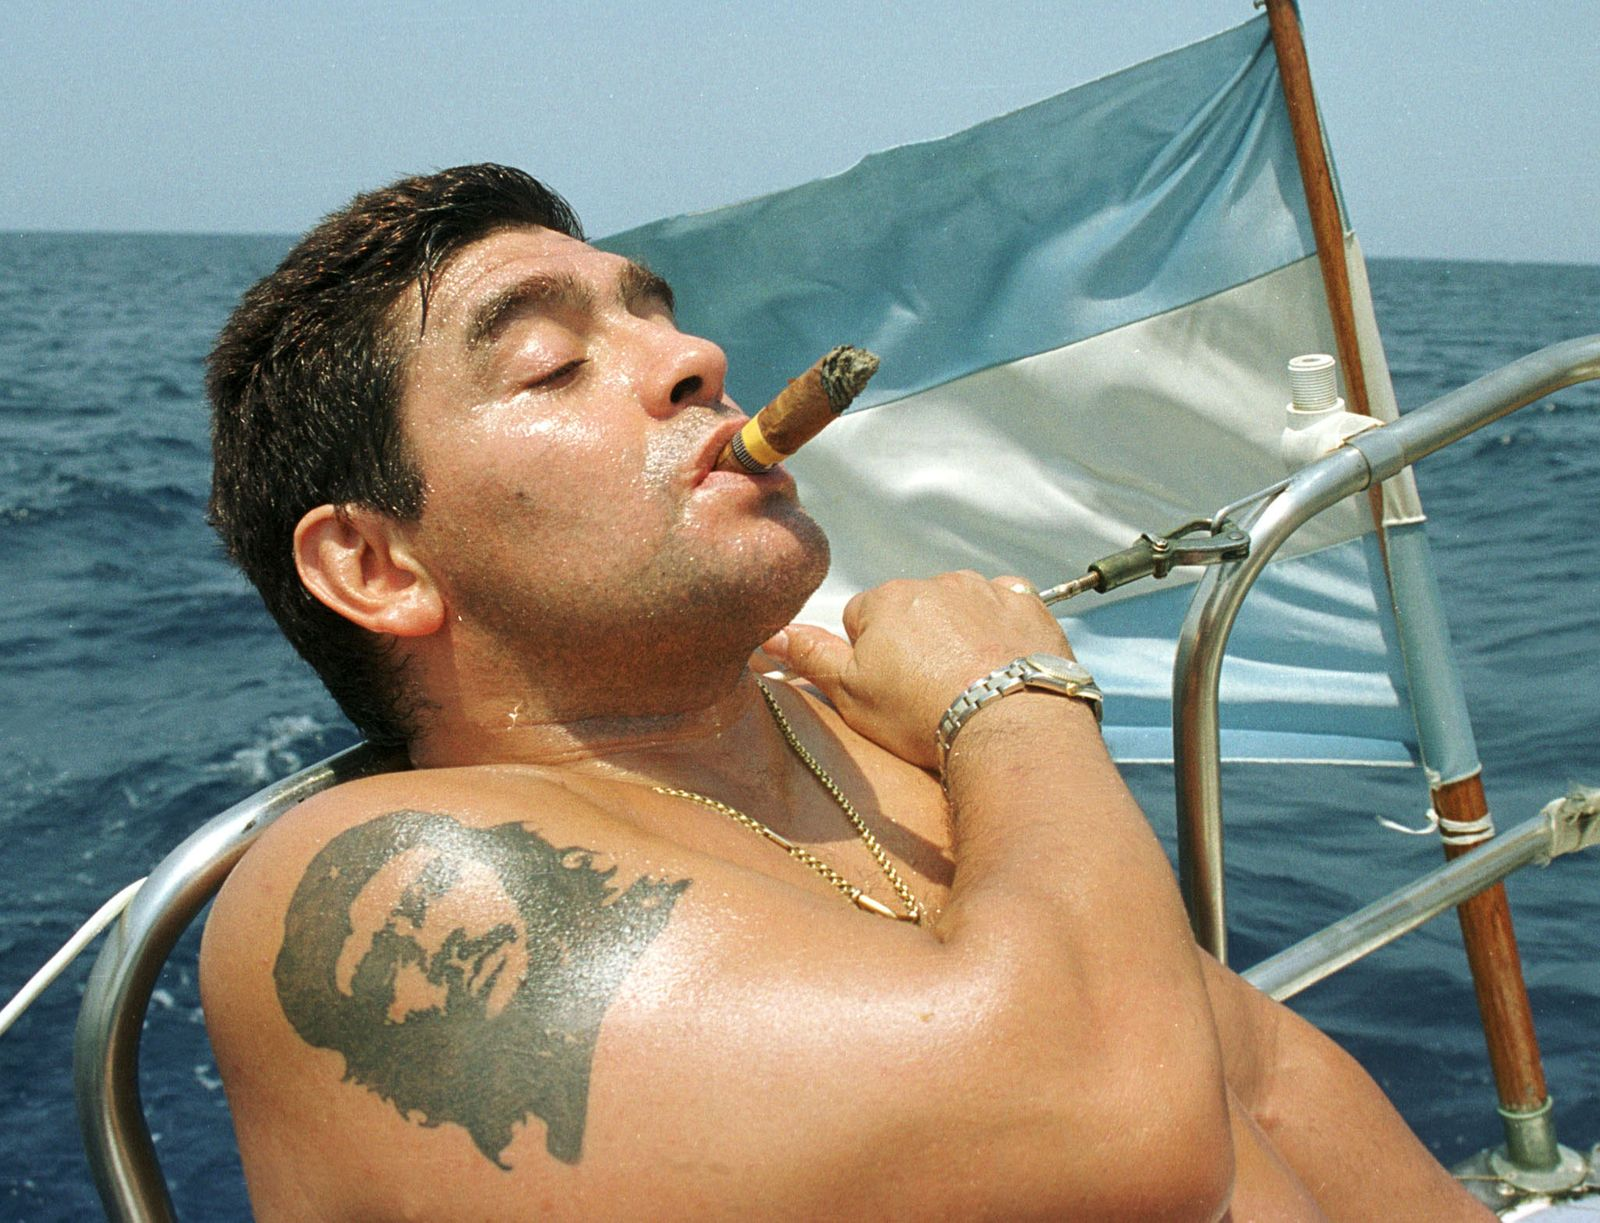 Argentine soccer star Diego Maradona smokes a Cohiba cigar as he rides a sail boat in waters off Hav..